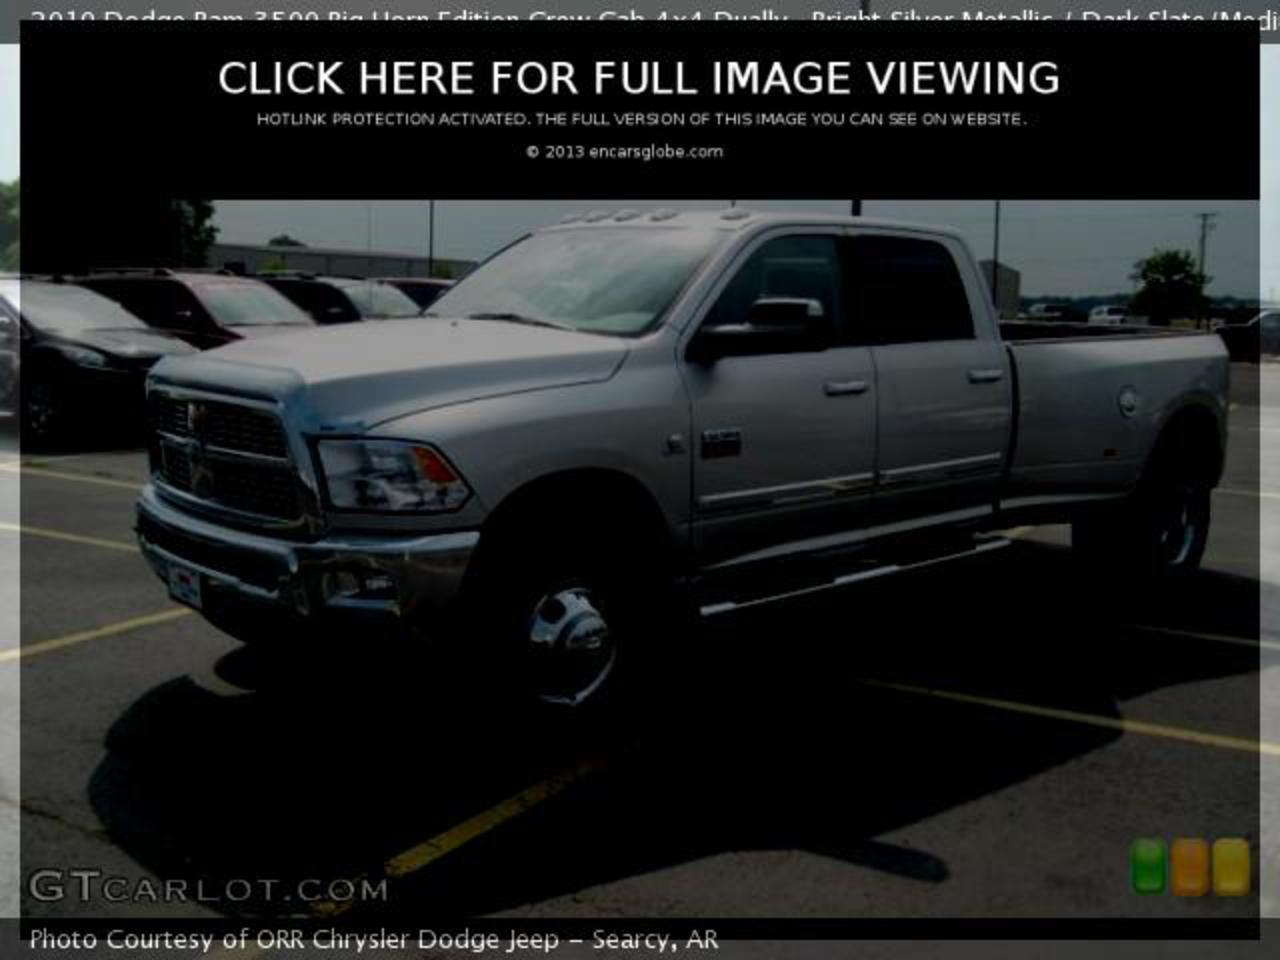 Dodge Ram 3500 Heavy Duty Big Horn Edition: 06 photo